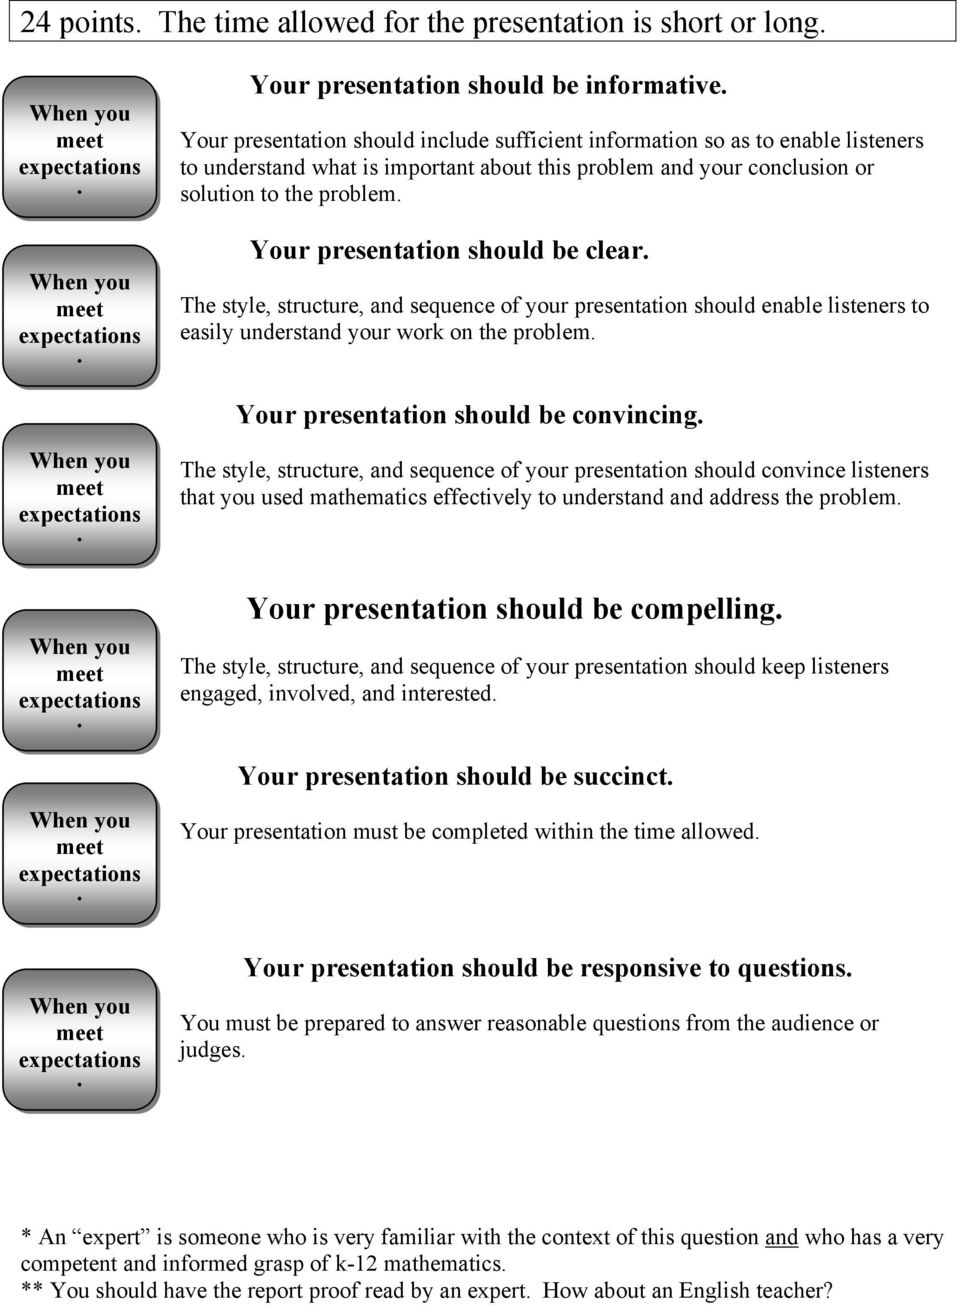 Your presentation should be clear. The style, structure, and sequence of your presentation should enable listeners to easily understand your work on the problem.